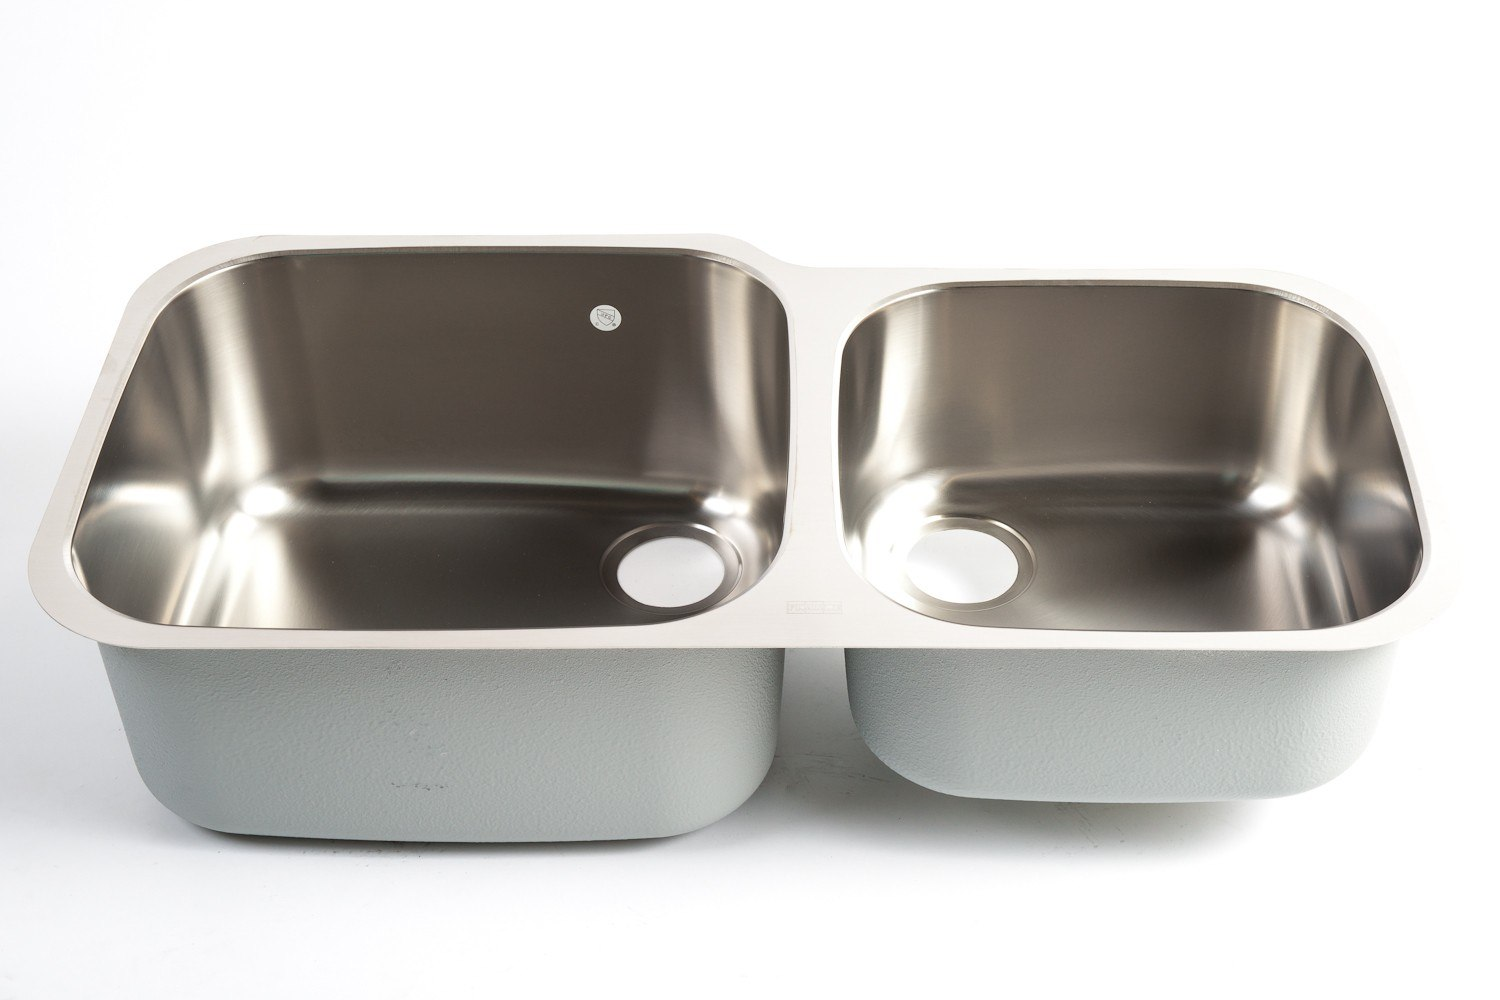 ... Double Bowl Stainless Steel Sink GNX120, GNX-120, GNX 120, Franke sink